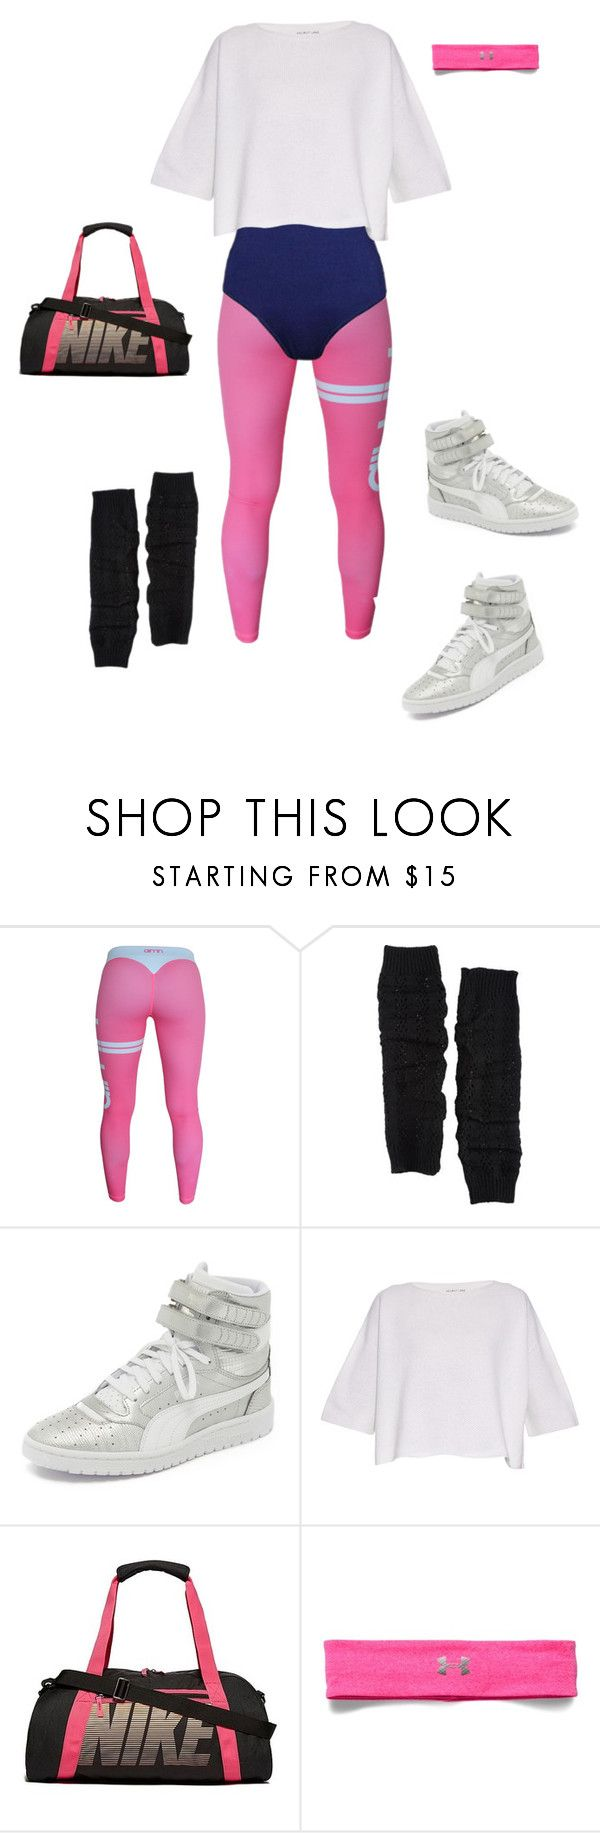 """""""80's Workout"""" by ccoss on Polyvore featuring Capelli New York, Puma, Helmut Lang, NIKE, Under Armour, women's clothing, women's fashion, women, female and woman"""